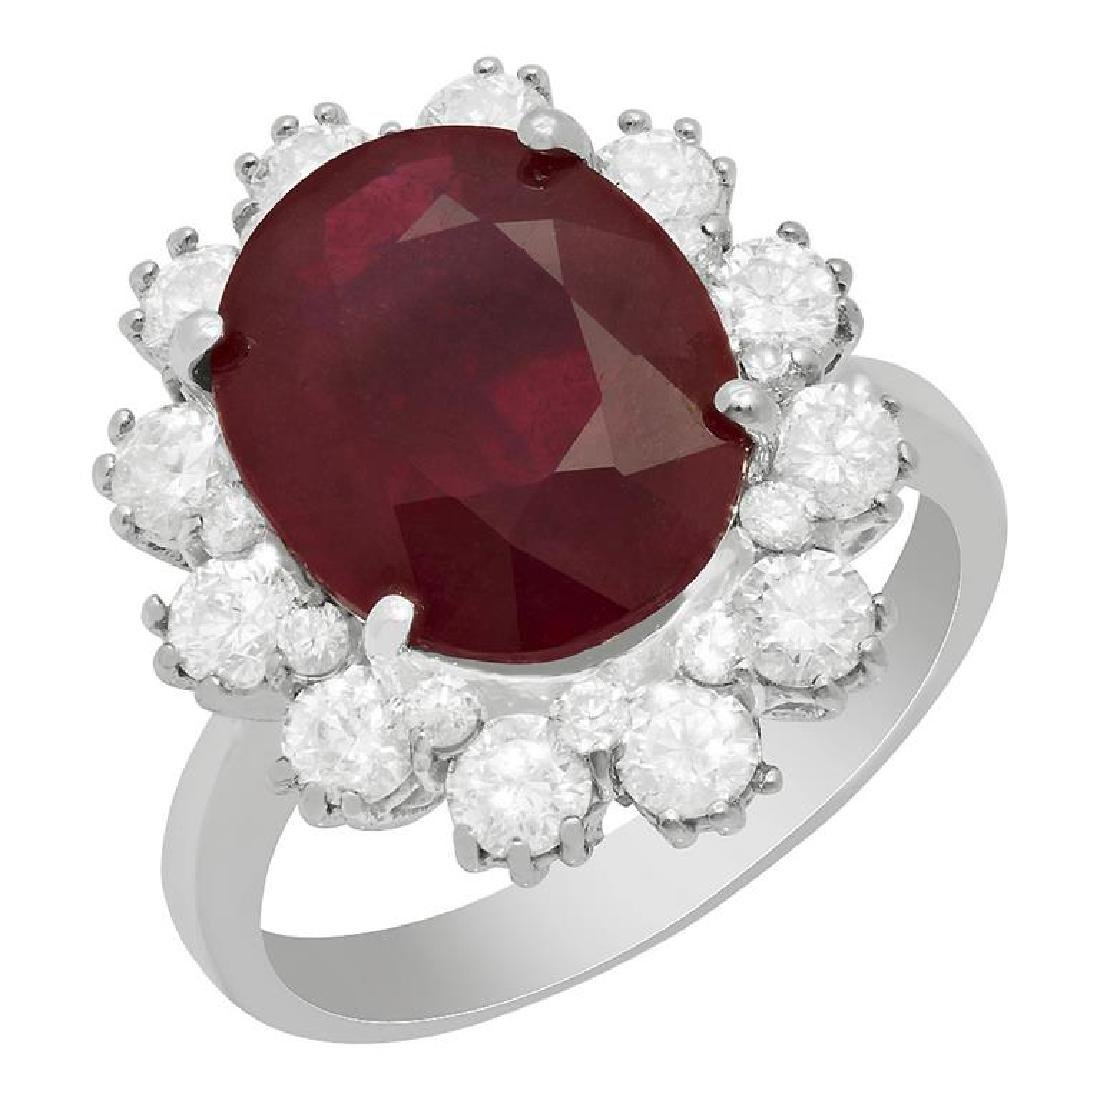 14k White Gold 6.15ct Ruby 1.44ct Diamond Ring